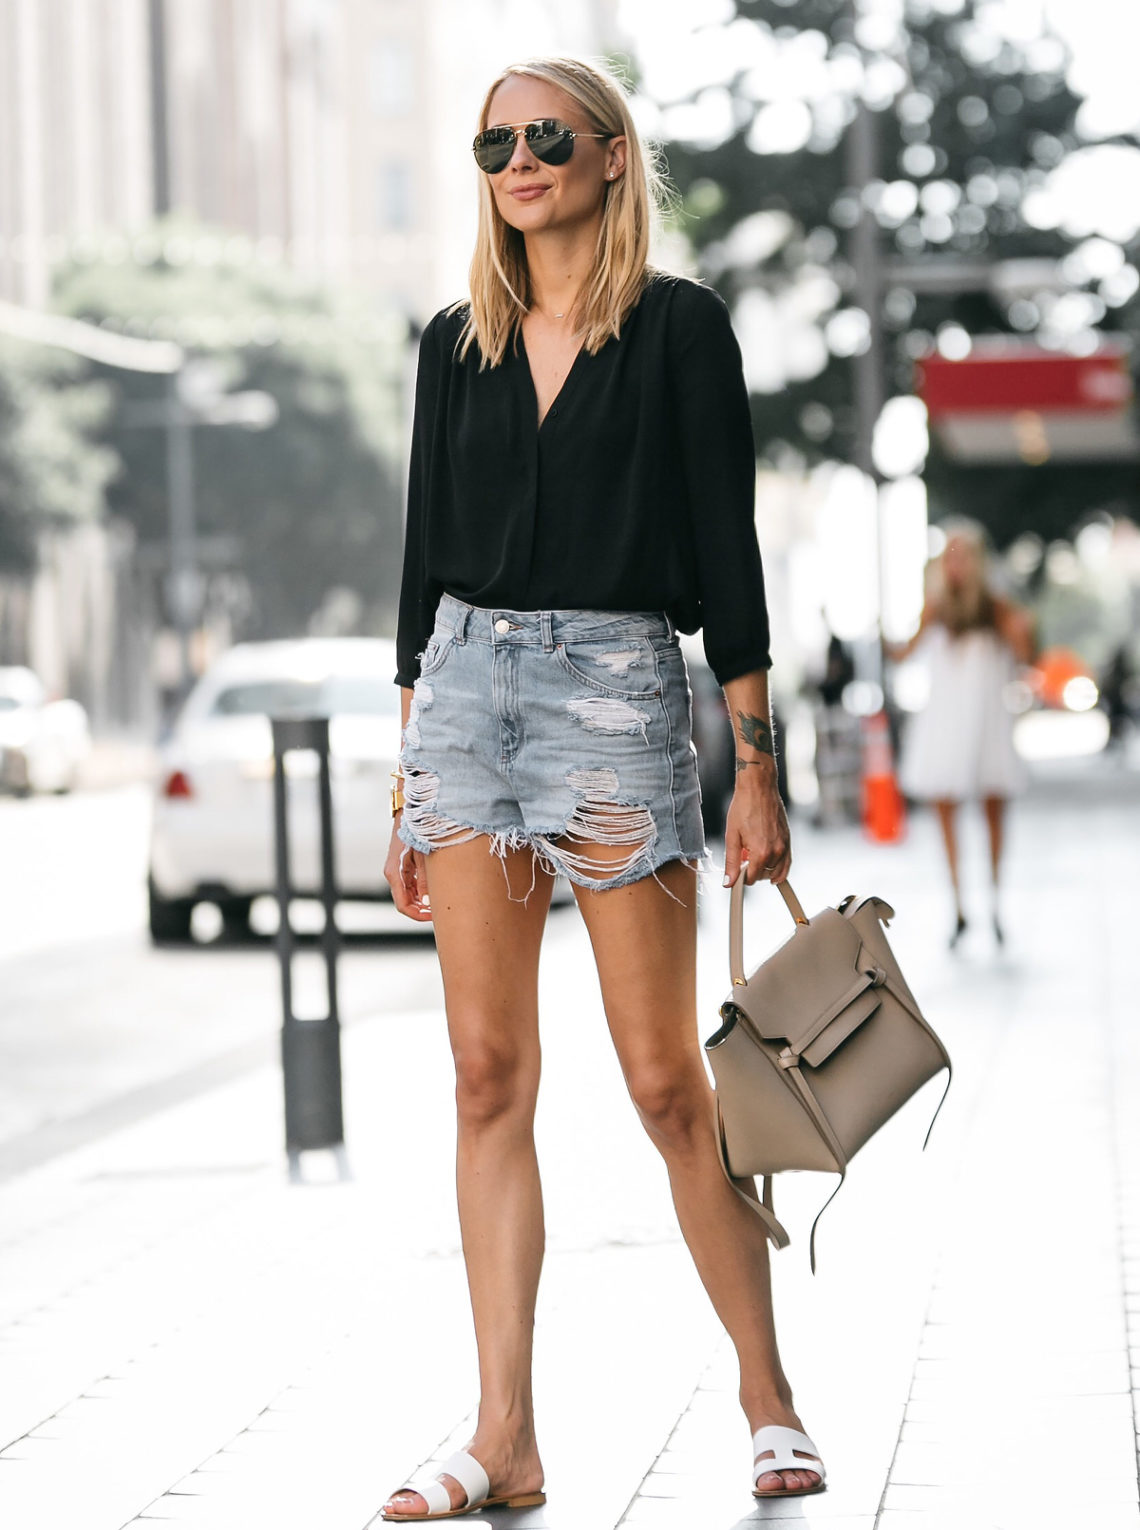 ec70c9dfd89 Blonde Woman Wearing Nodstrom Black Long Sleeve Button Down Blouse Topshop  Denim Ripped Mom Shorts Outfit